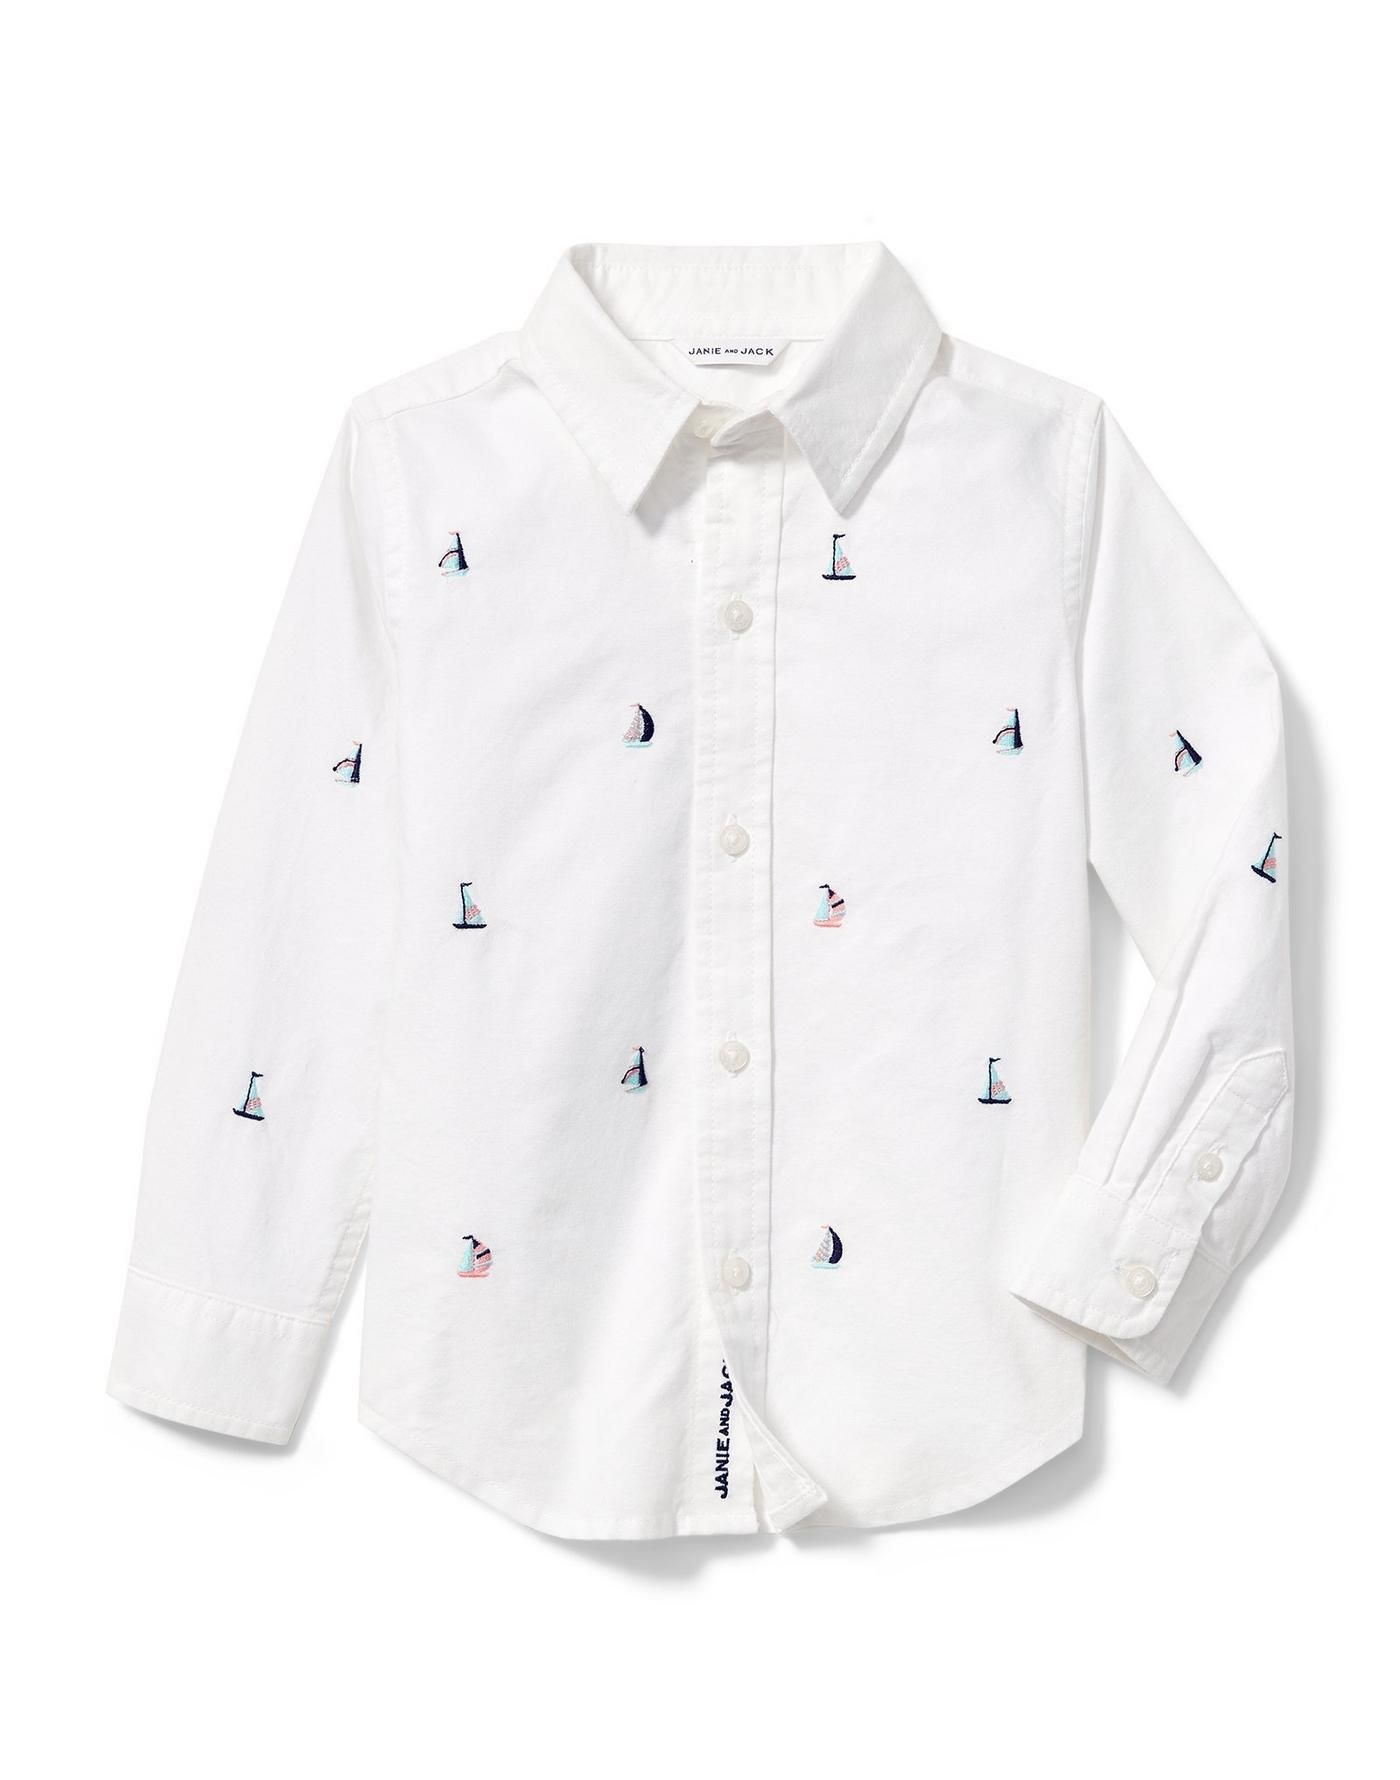 Boy White Sailboat Oxford Shirt By Janie And Jack In 2021 Oxford Shirt Oxford Shirt Outfit Casual Style Outfits [ 1780 x 1400 Pixel ]